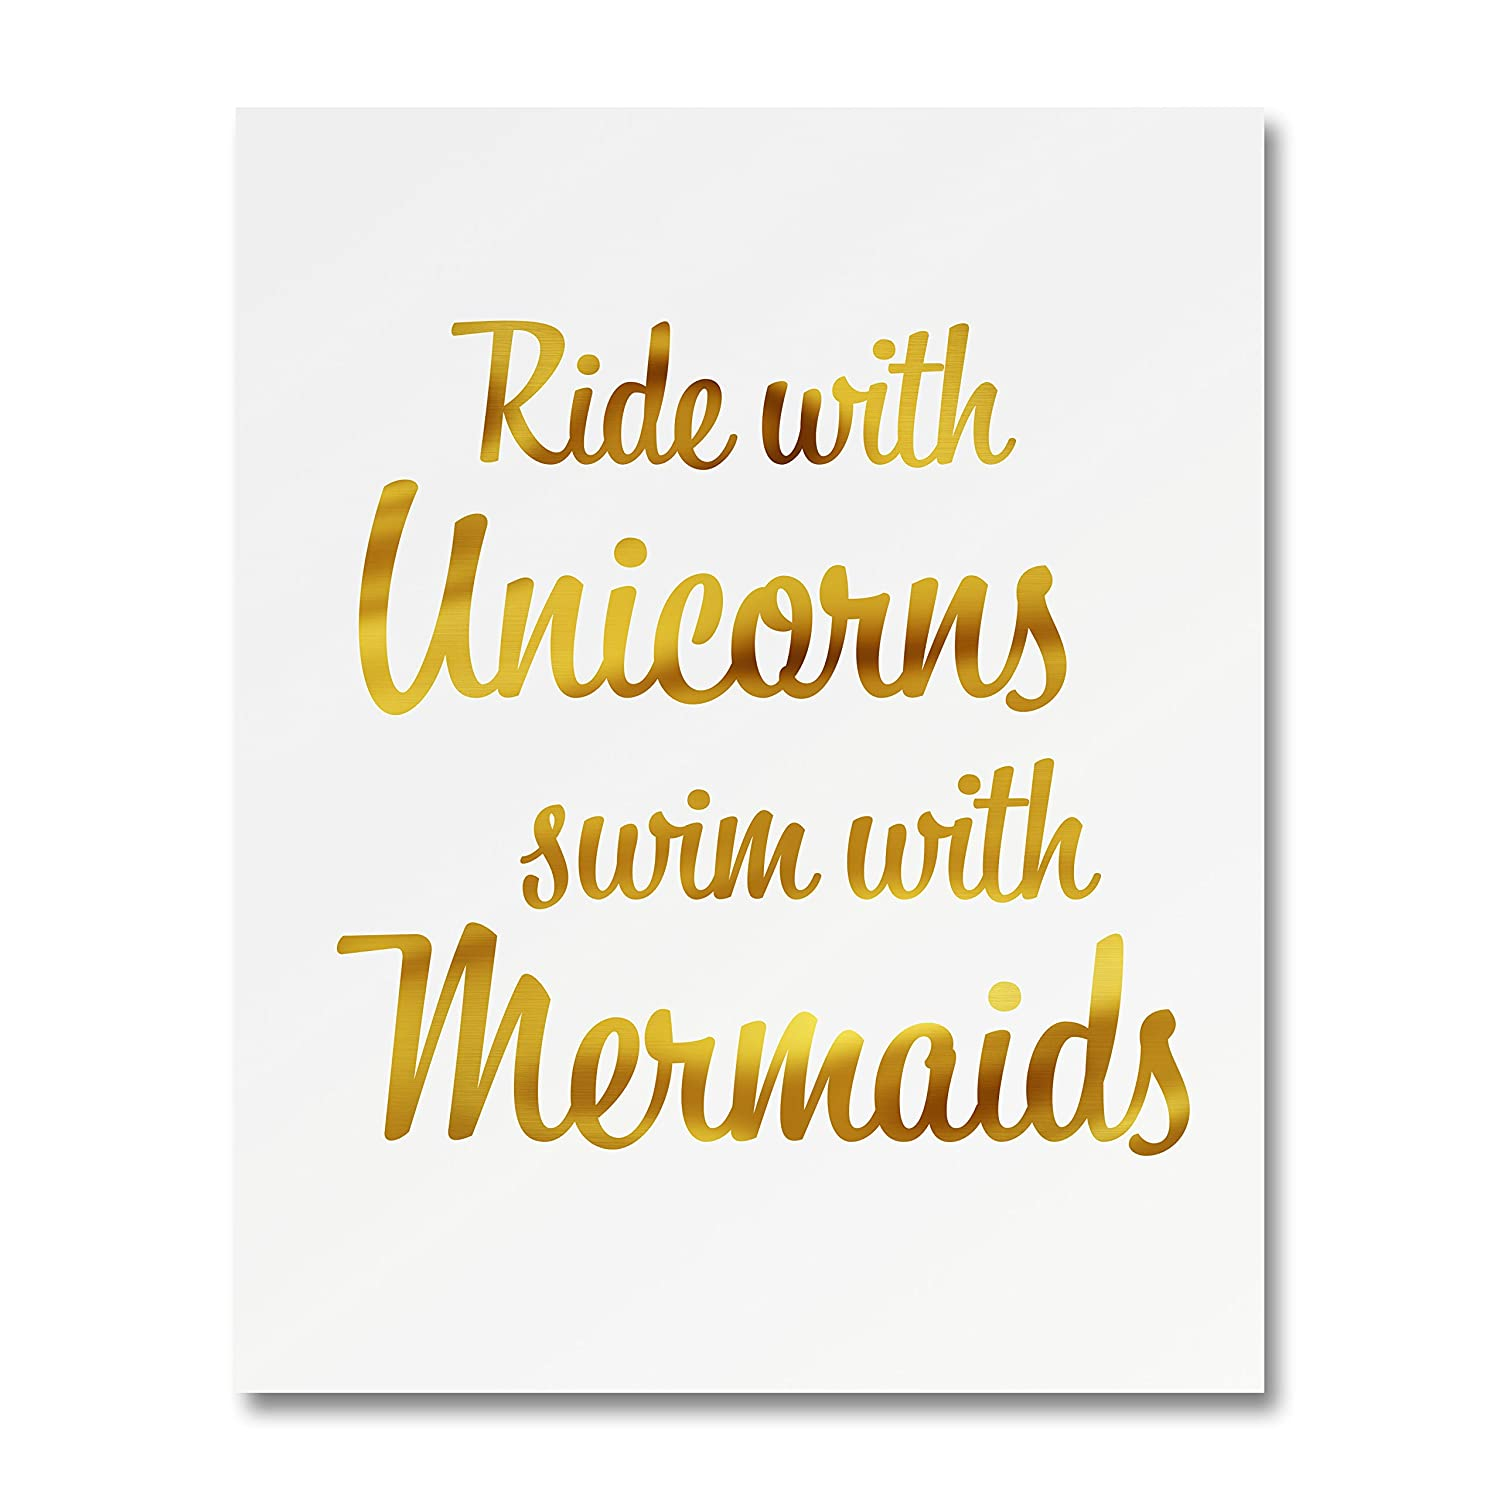 """""""Ride With Unicorns Swim With Mermaids"""" Gold Foil Art Print Small Poster - 300gsm Silk Paper Card Stock, Home Office Wall Art Decor, Inspirational Motivational Encouraging Quote 5"""